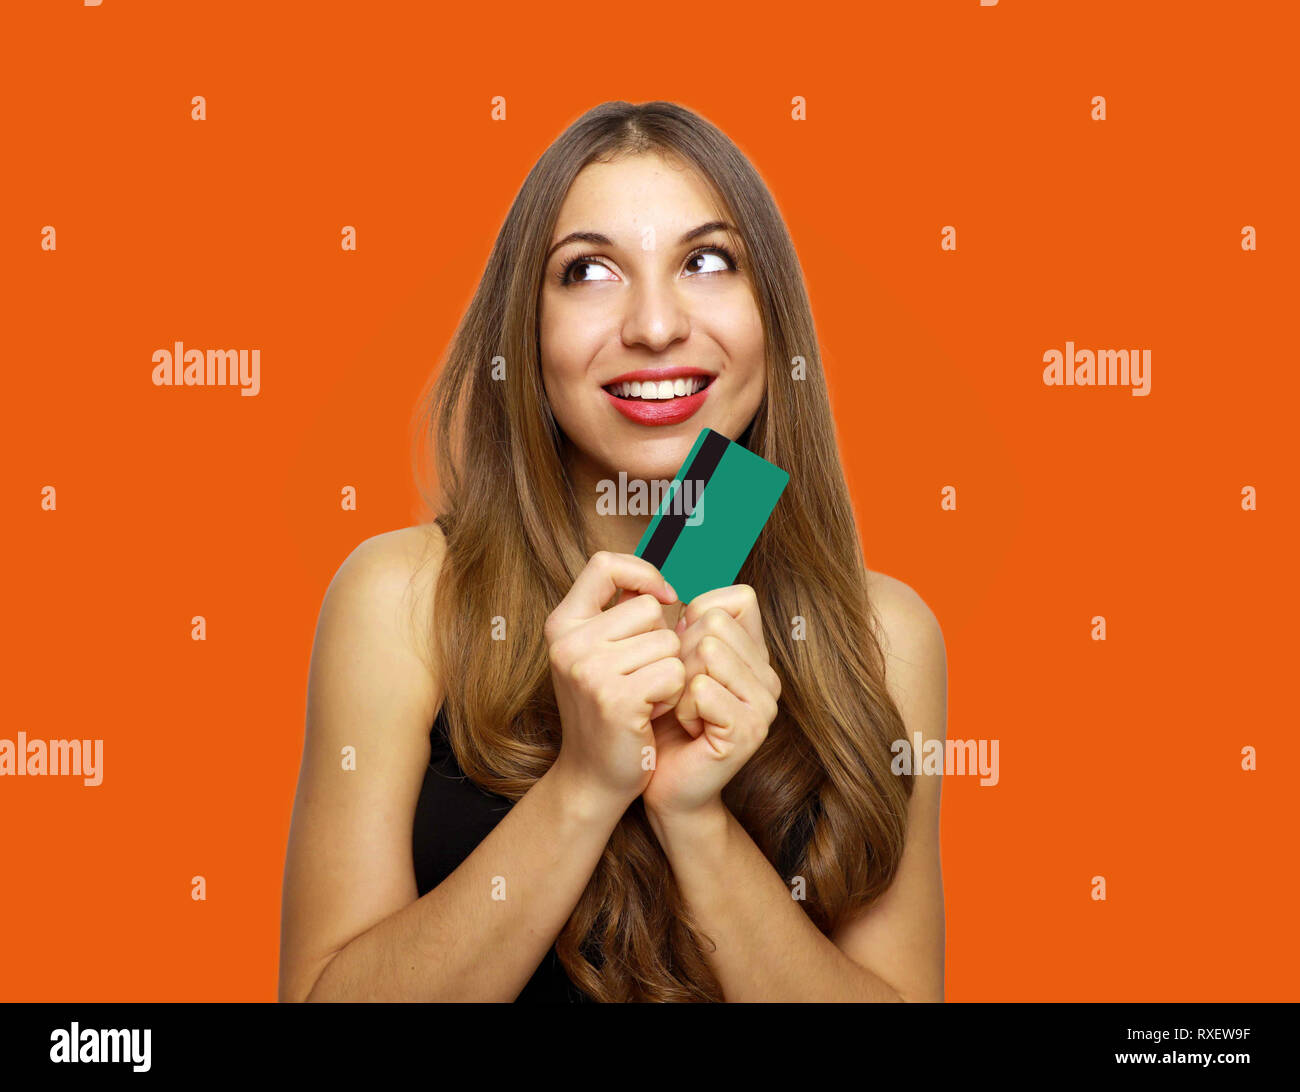 Pleased intrigued brunette woman in dress holding credit card and looking away over orange background - Stock Image